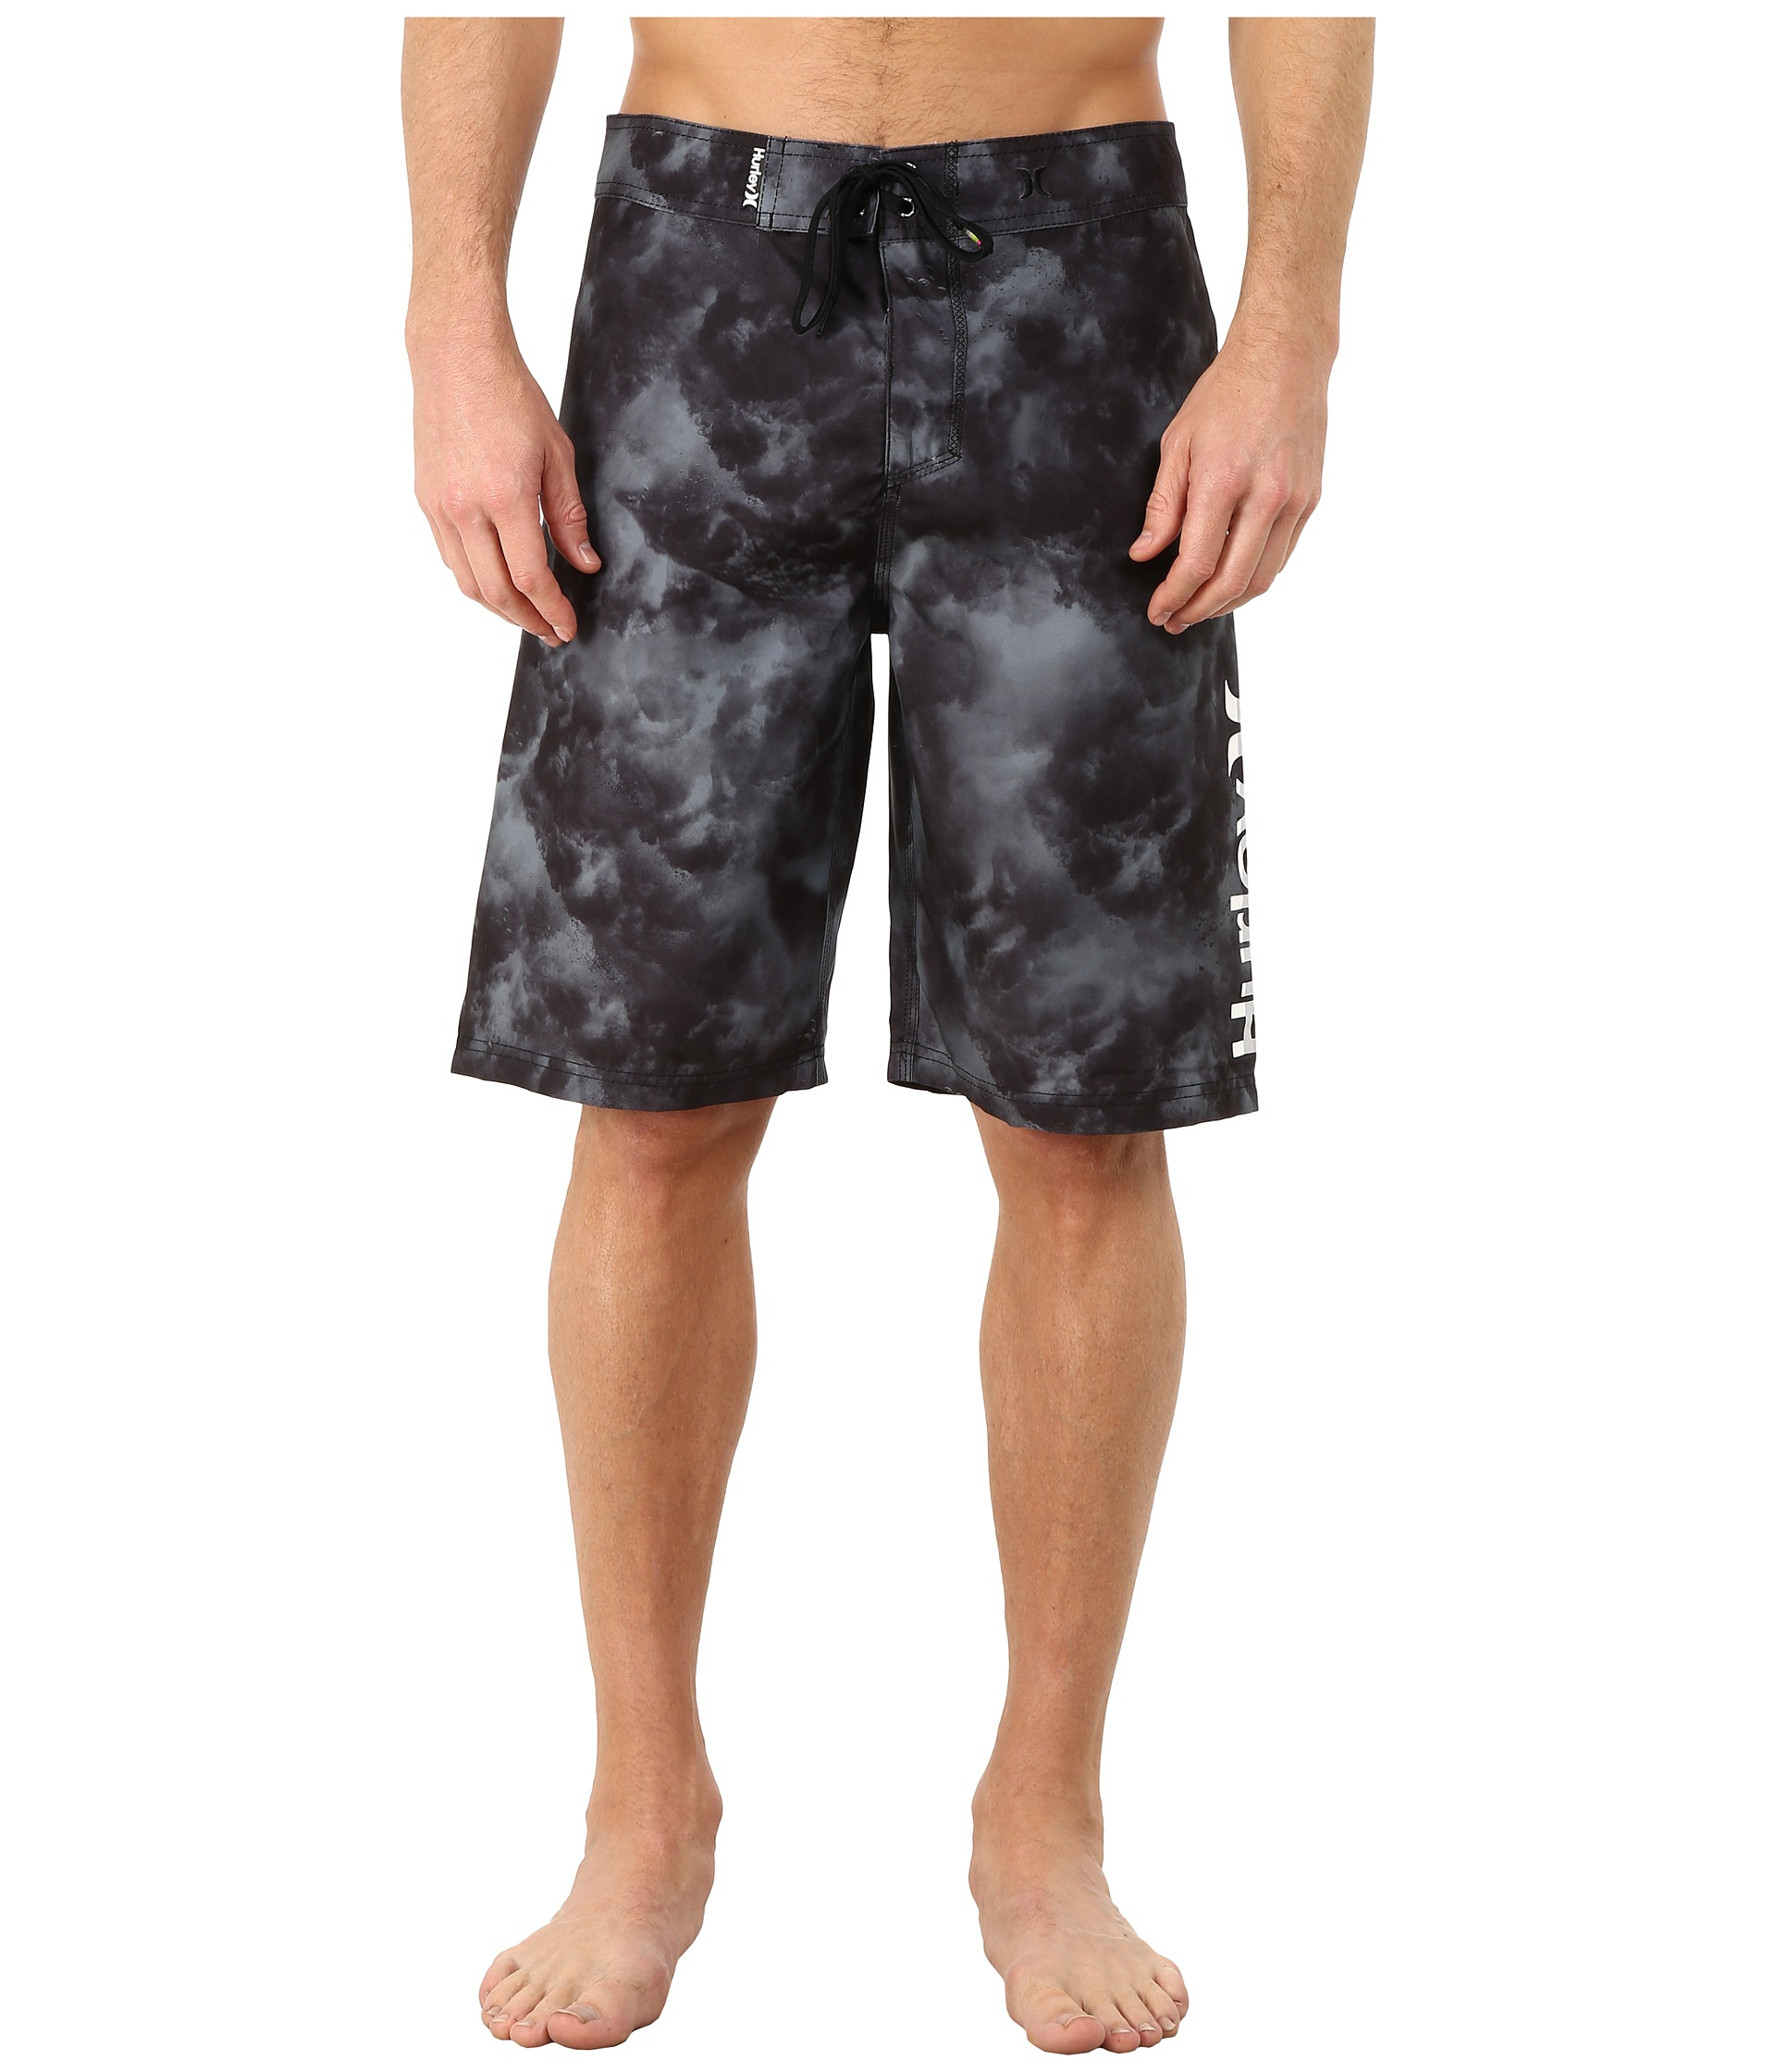 black single men in hurley Designed to help make every session lighter, faster, and more flexible, hurley phantom boardshorts offer a gateway to your peak performance.